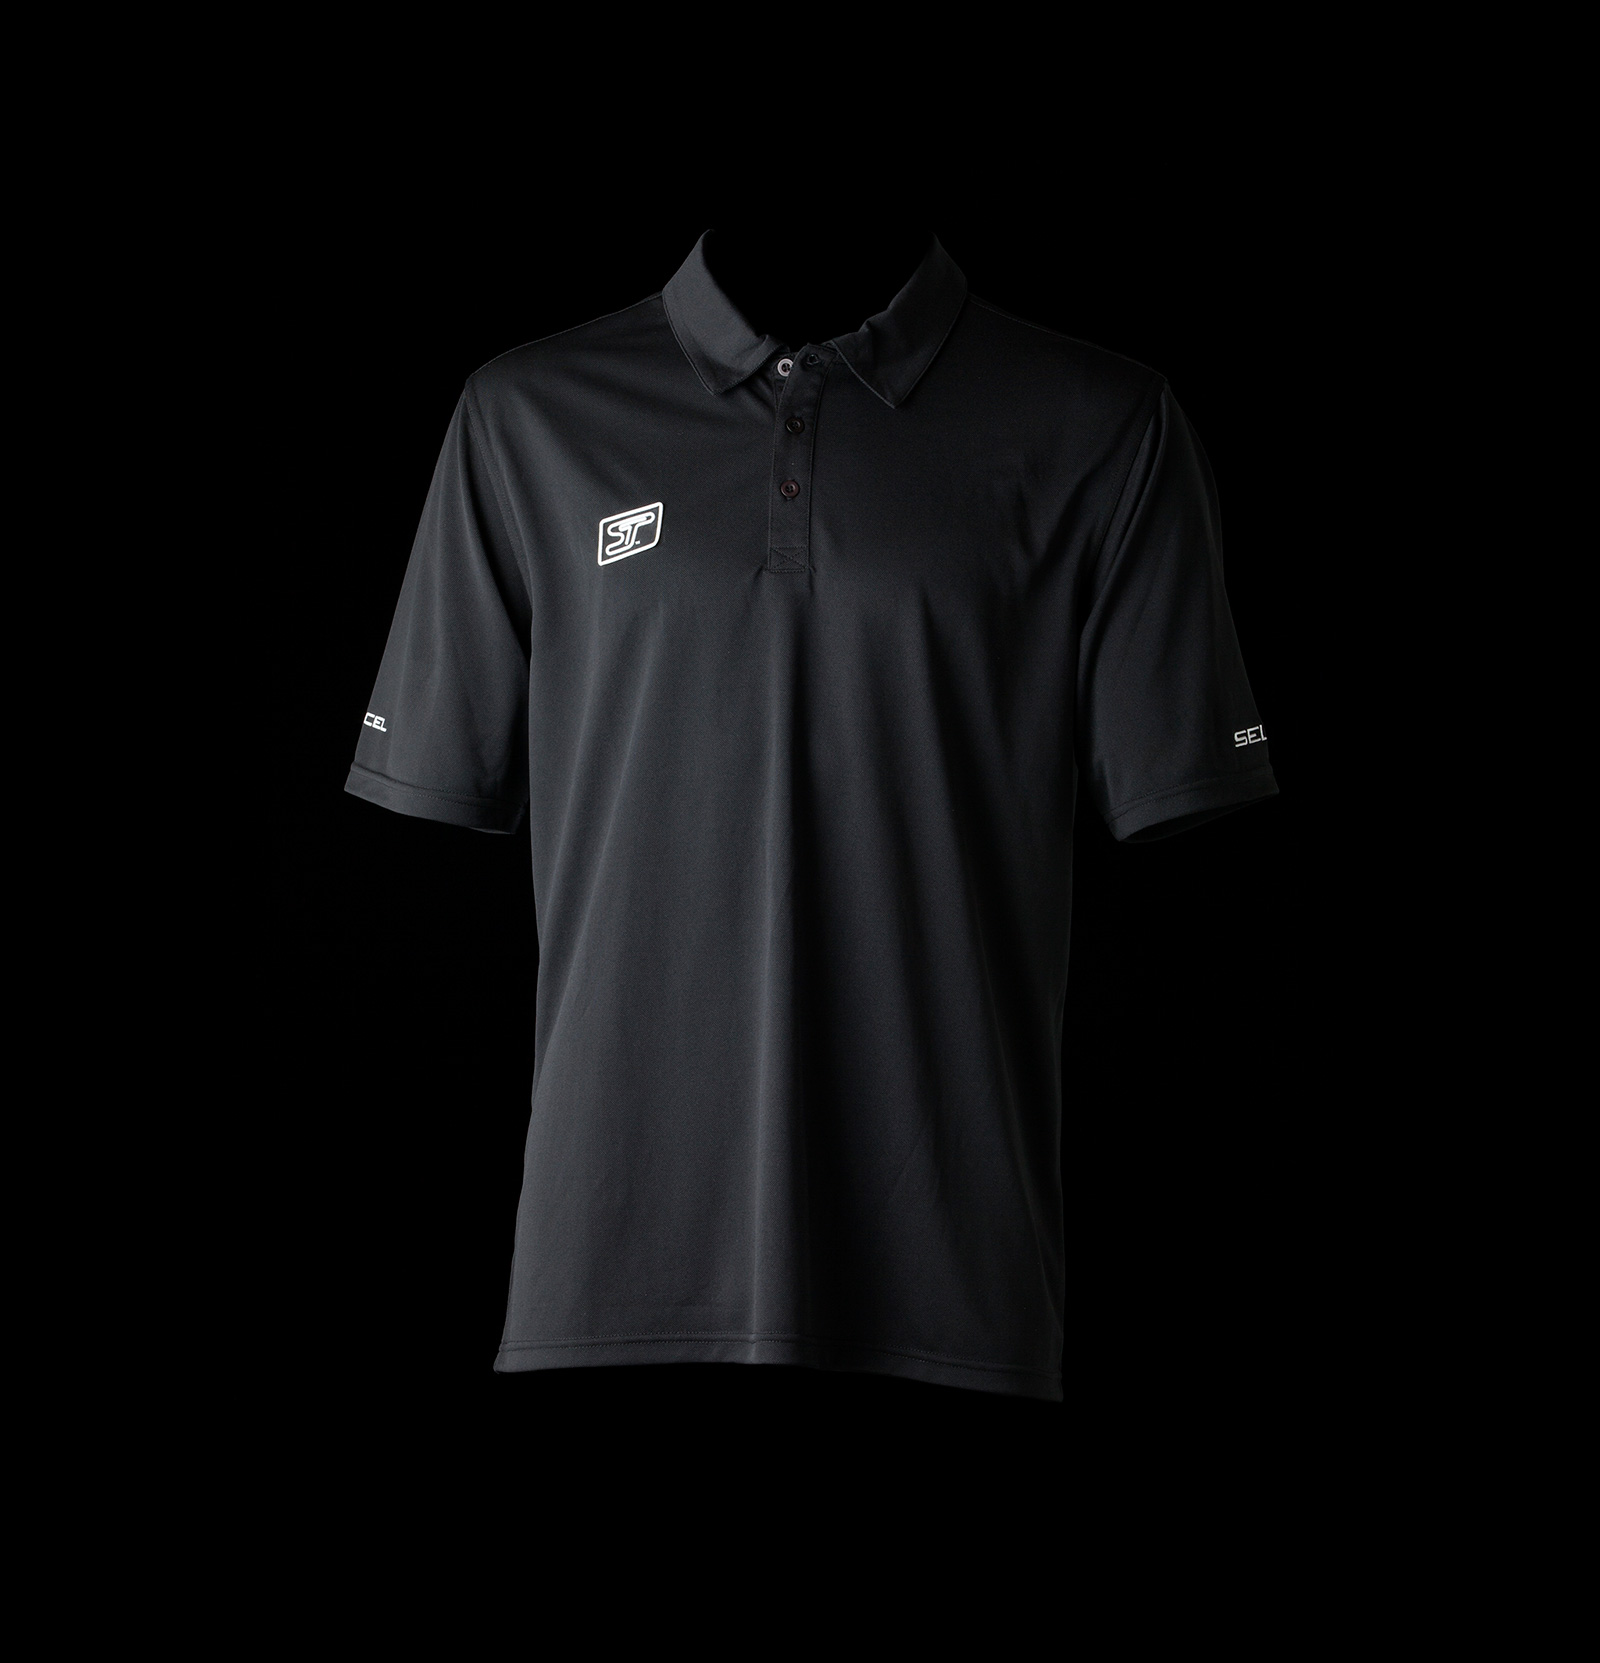 Excel-Polo-Shirt-Promo-03